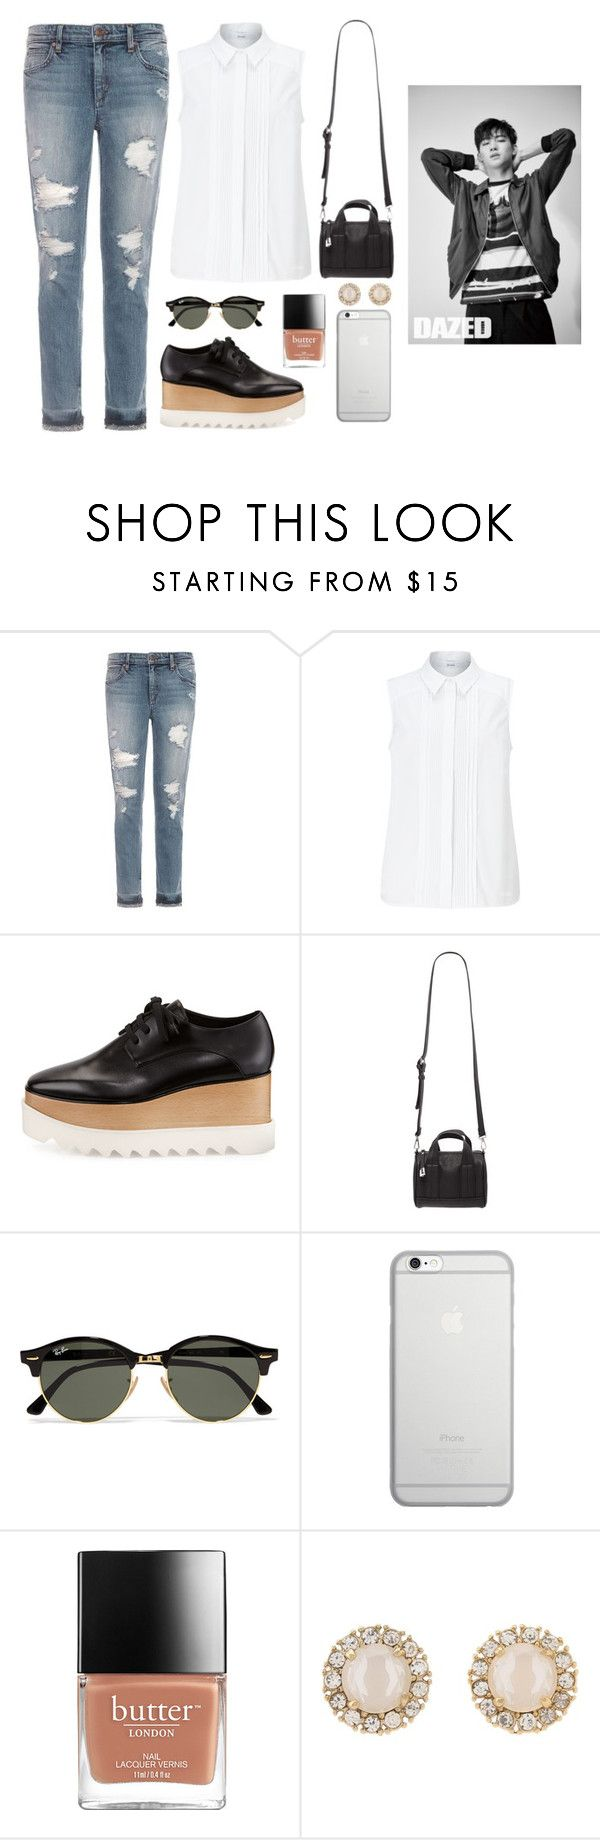 """""""Visiting Japan with JB"""" by got7outfits ❤ liked on Polyvore featuring Joe's Jeans, John Lewis, STELLA McCARTNEY, Forever 21, Ray-Ban, Native Union and Kate Spade"""